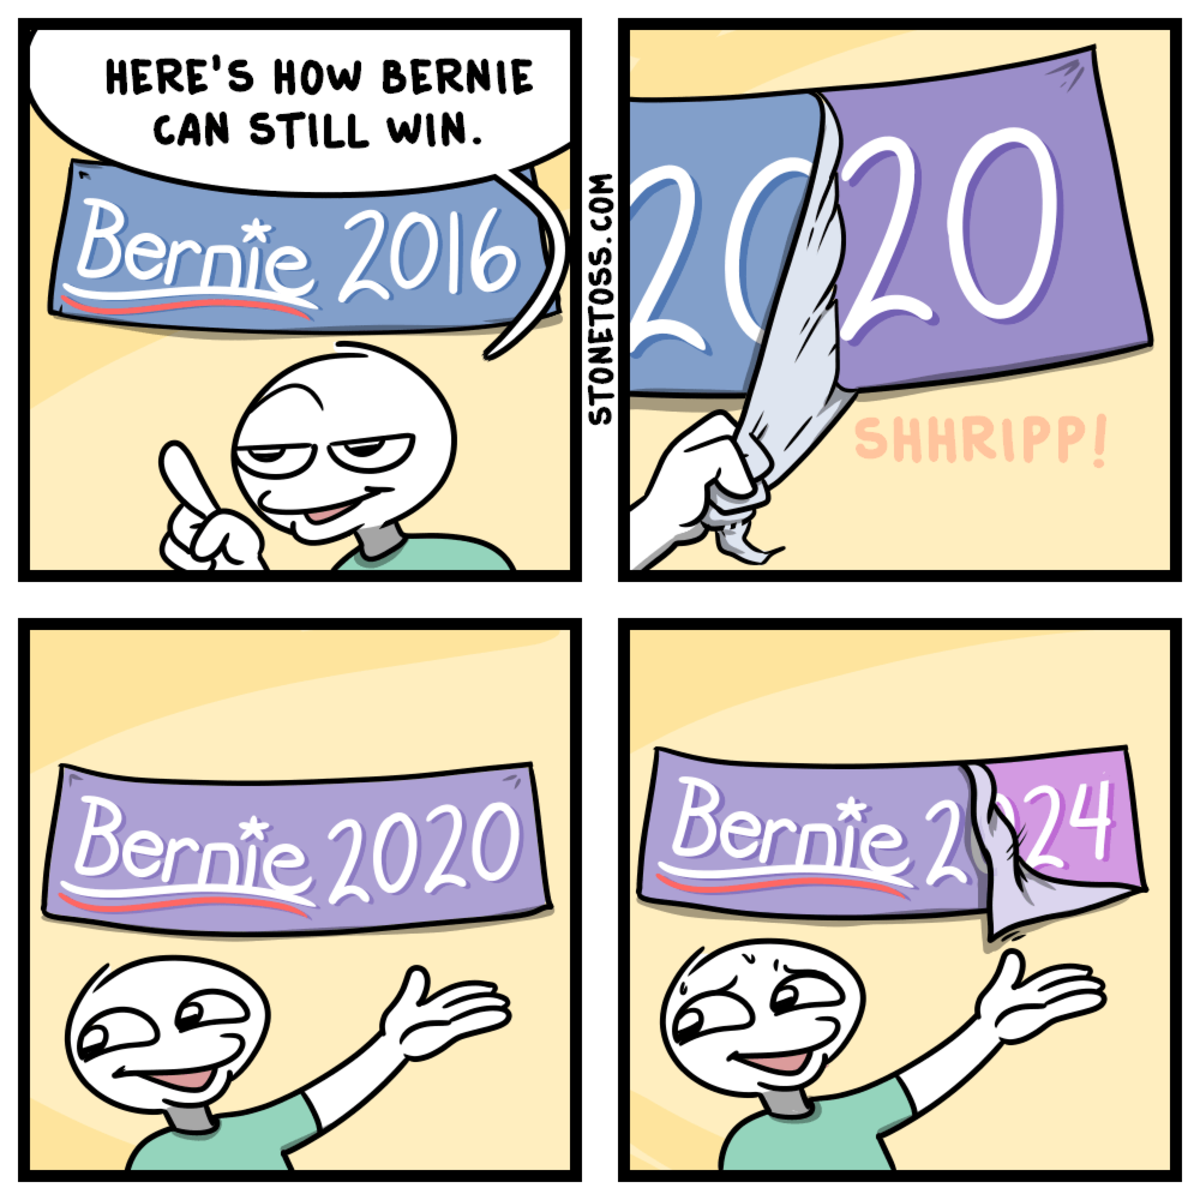 A Slow Bern. .. > Bernie will still be alive in 2024. He's ancient. Also, this comic is has no punchline.